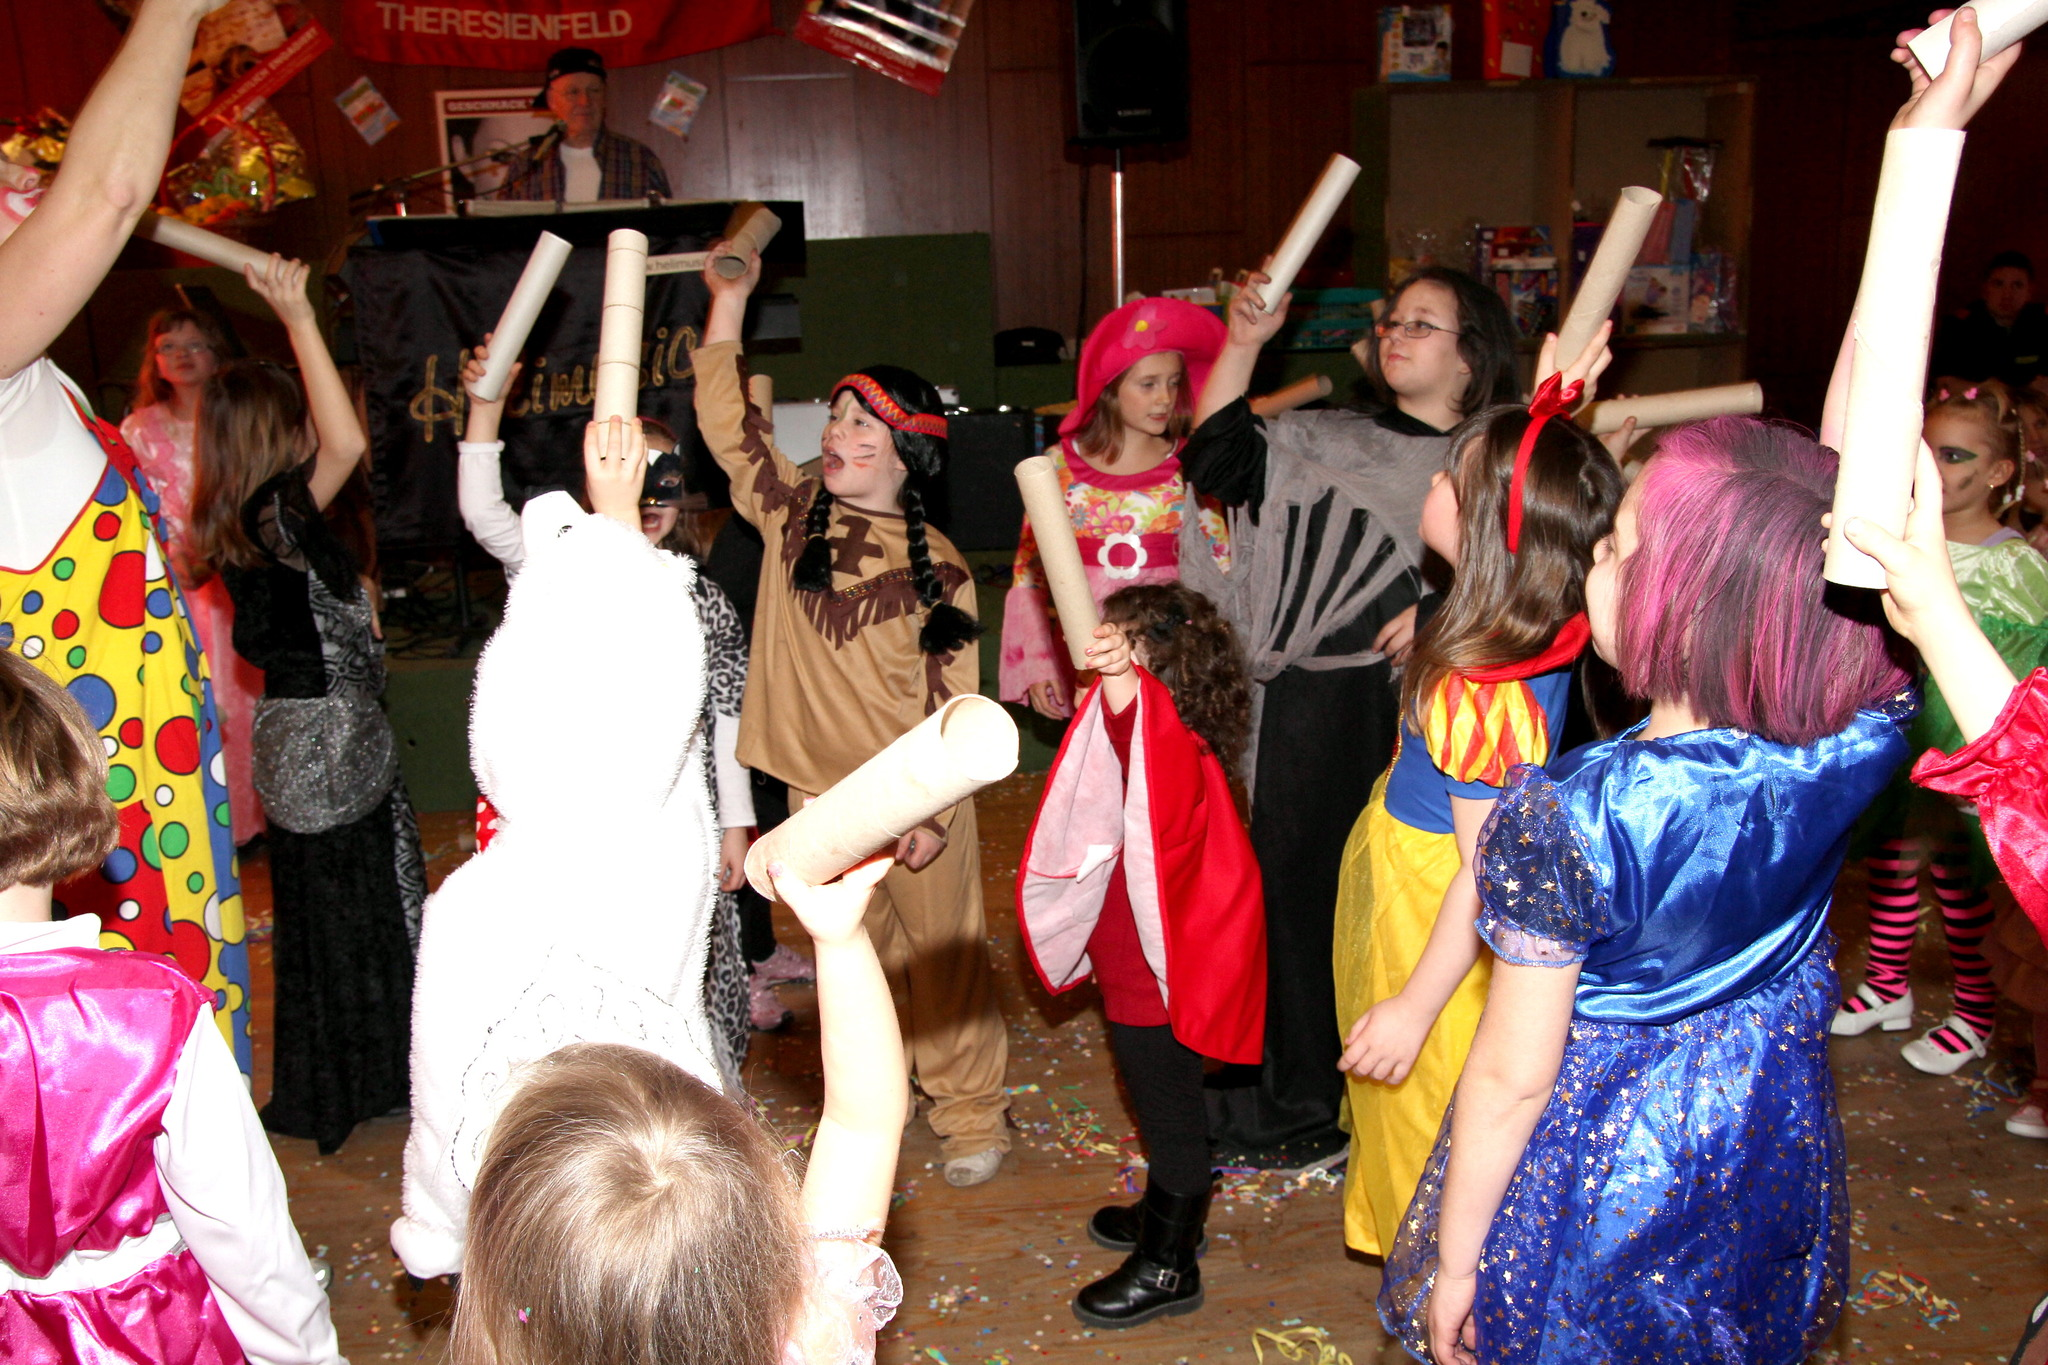 New Years Eve Parties &-Events in Theresienfeld, sterreich